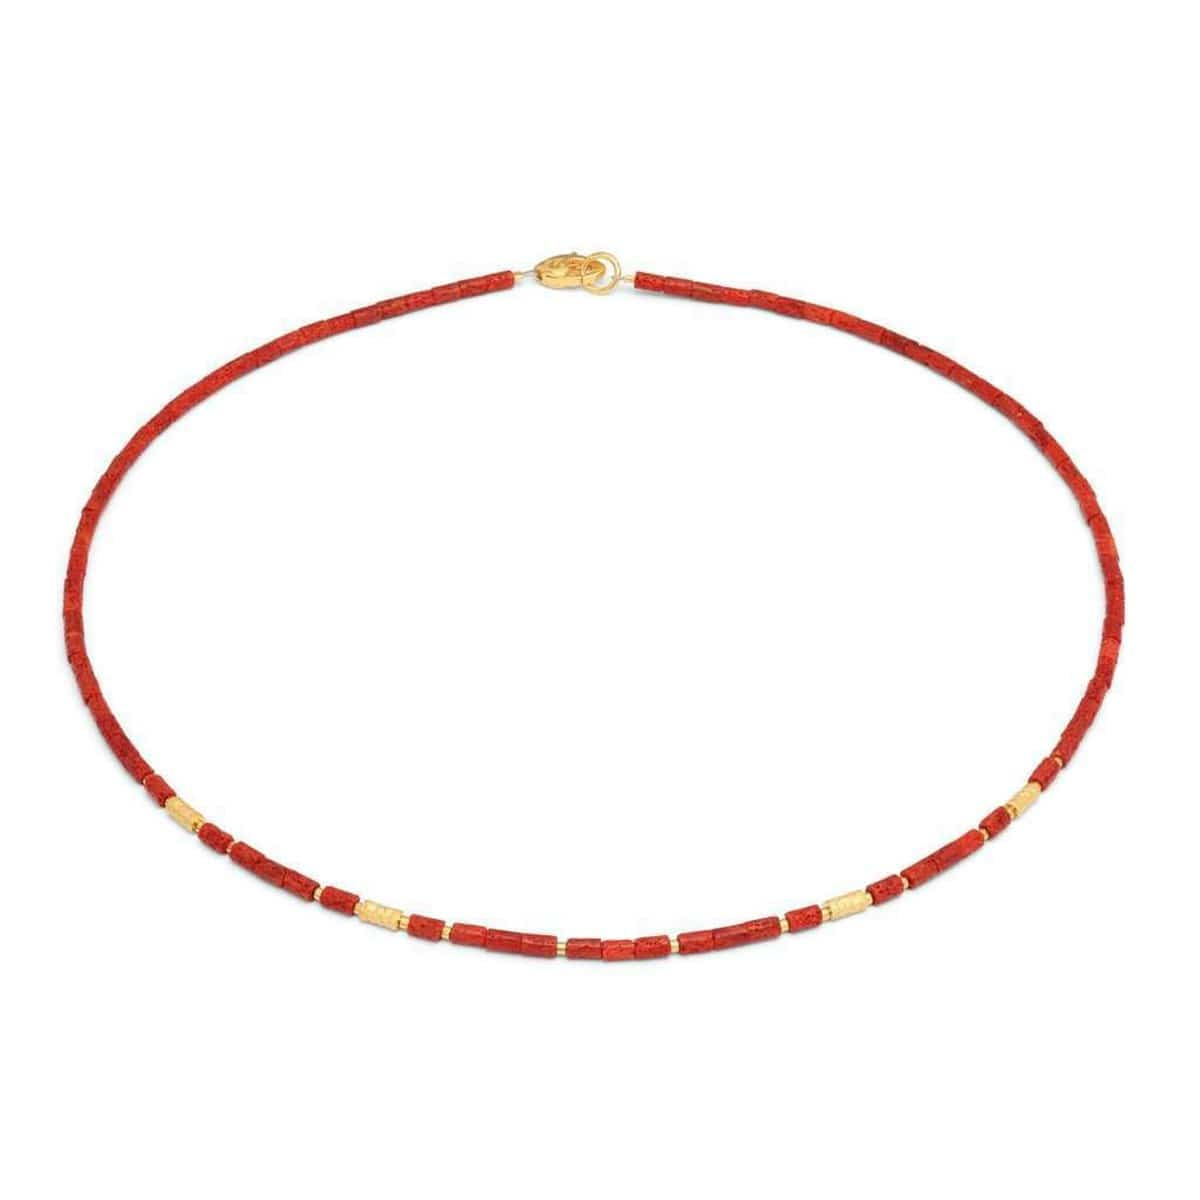 Wasena Red Coral Necklace - 84462296-Bernd Wolf-Renee Taylor Gallery